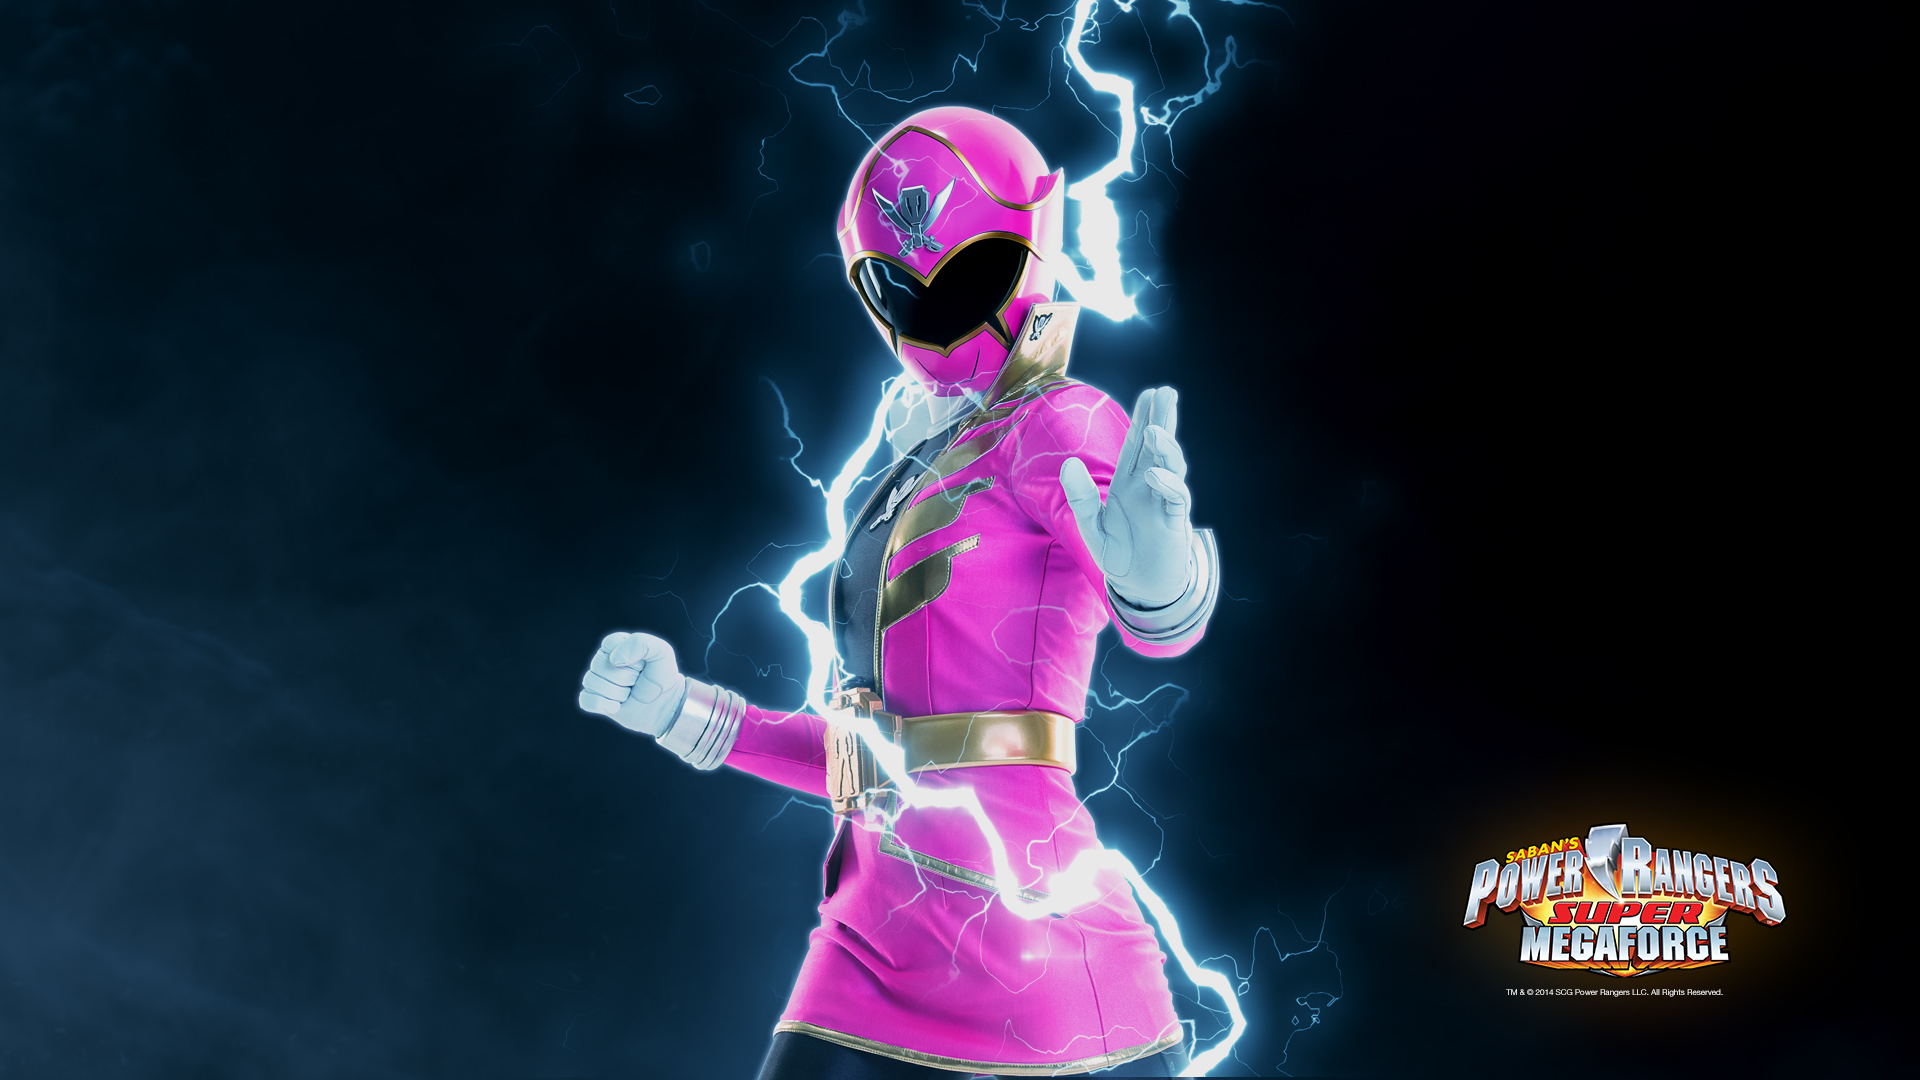 Pink Power Ranger Wallpaper - WallpaperSafari